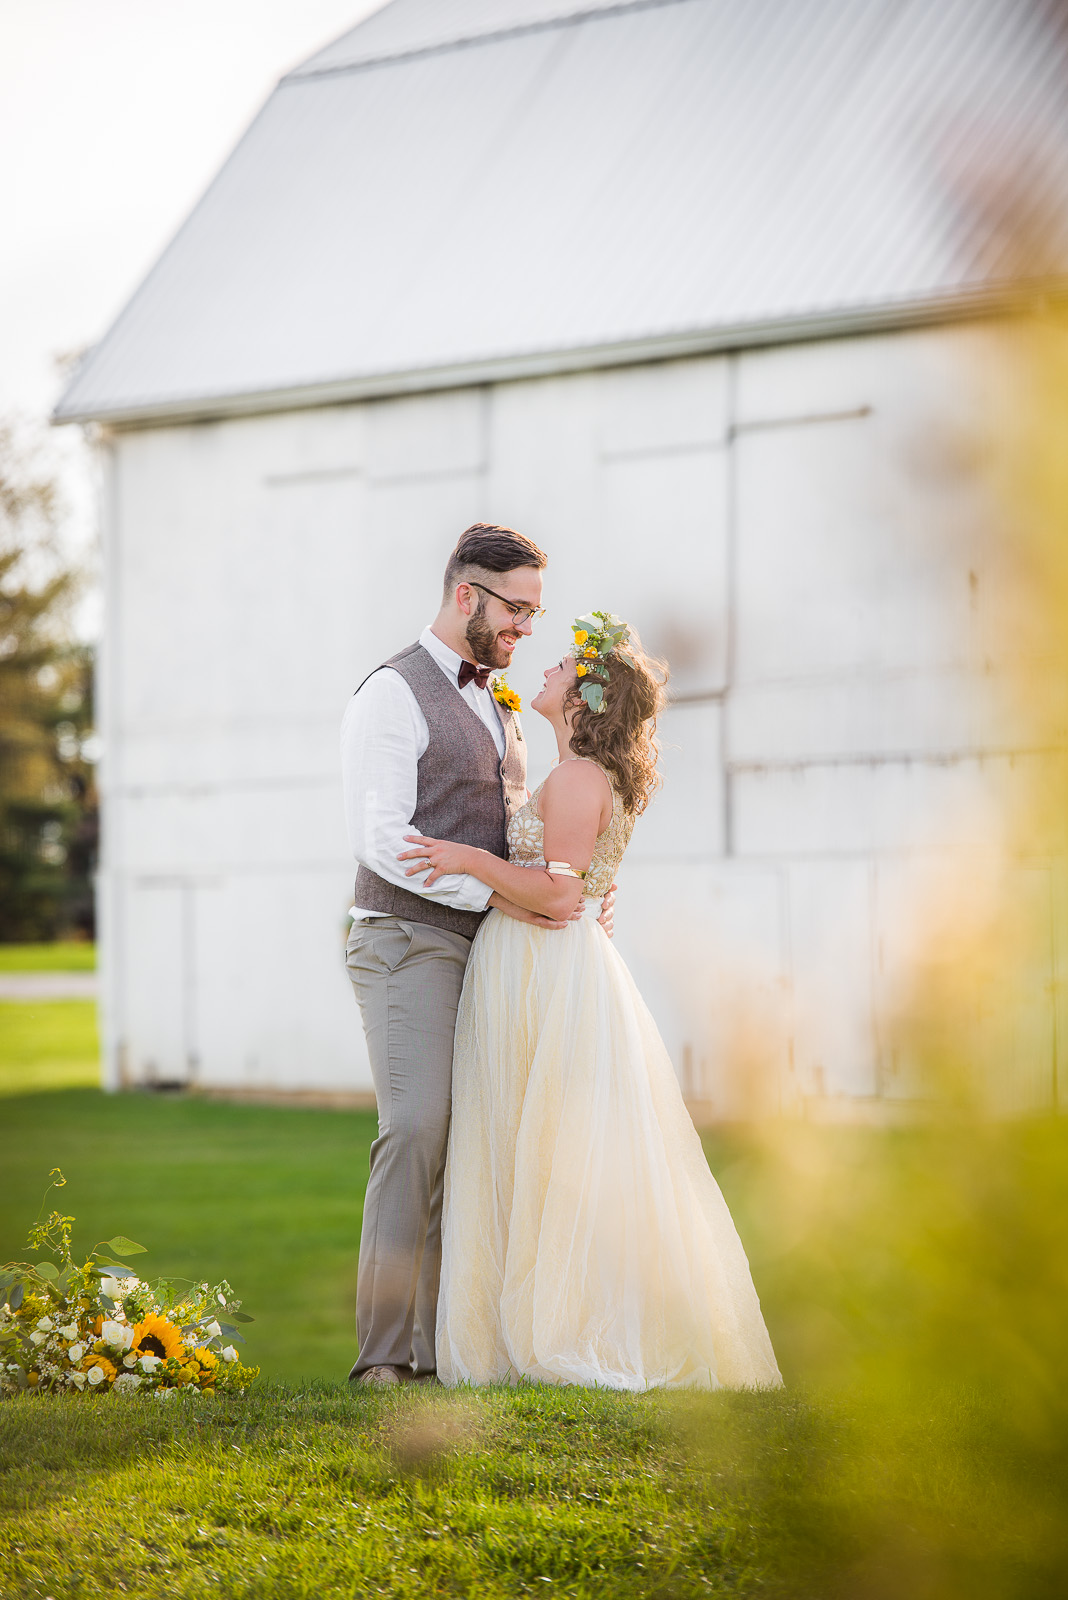 Eric_and_Christy_Photography_Blog_Wedding_Lauren_Jon-25